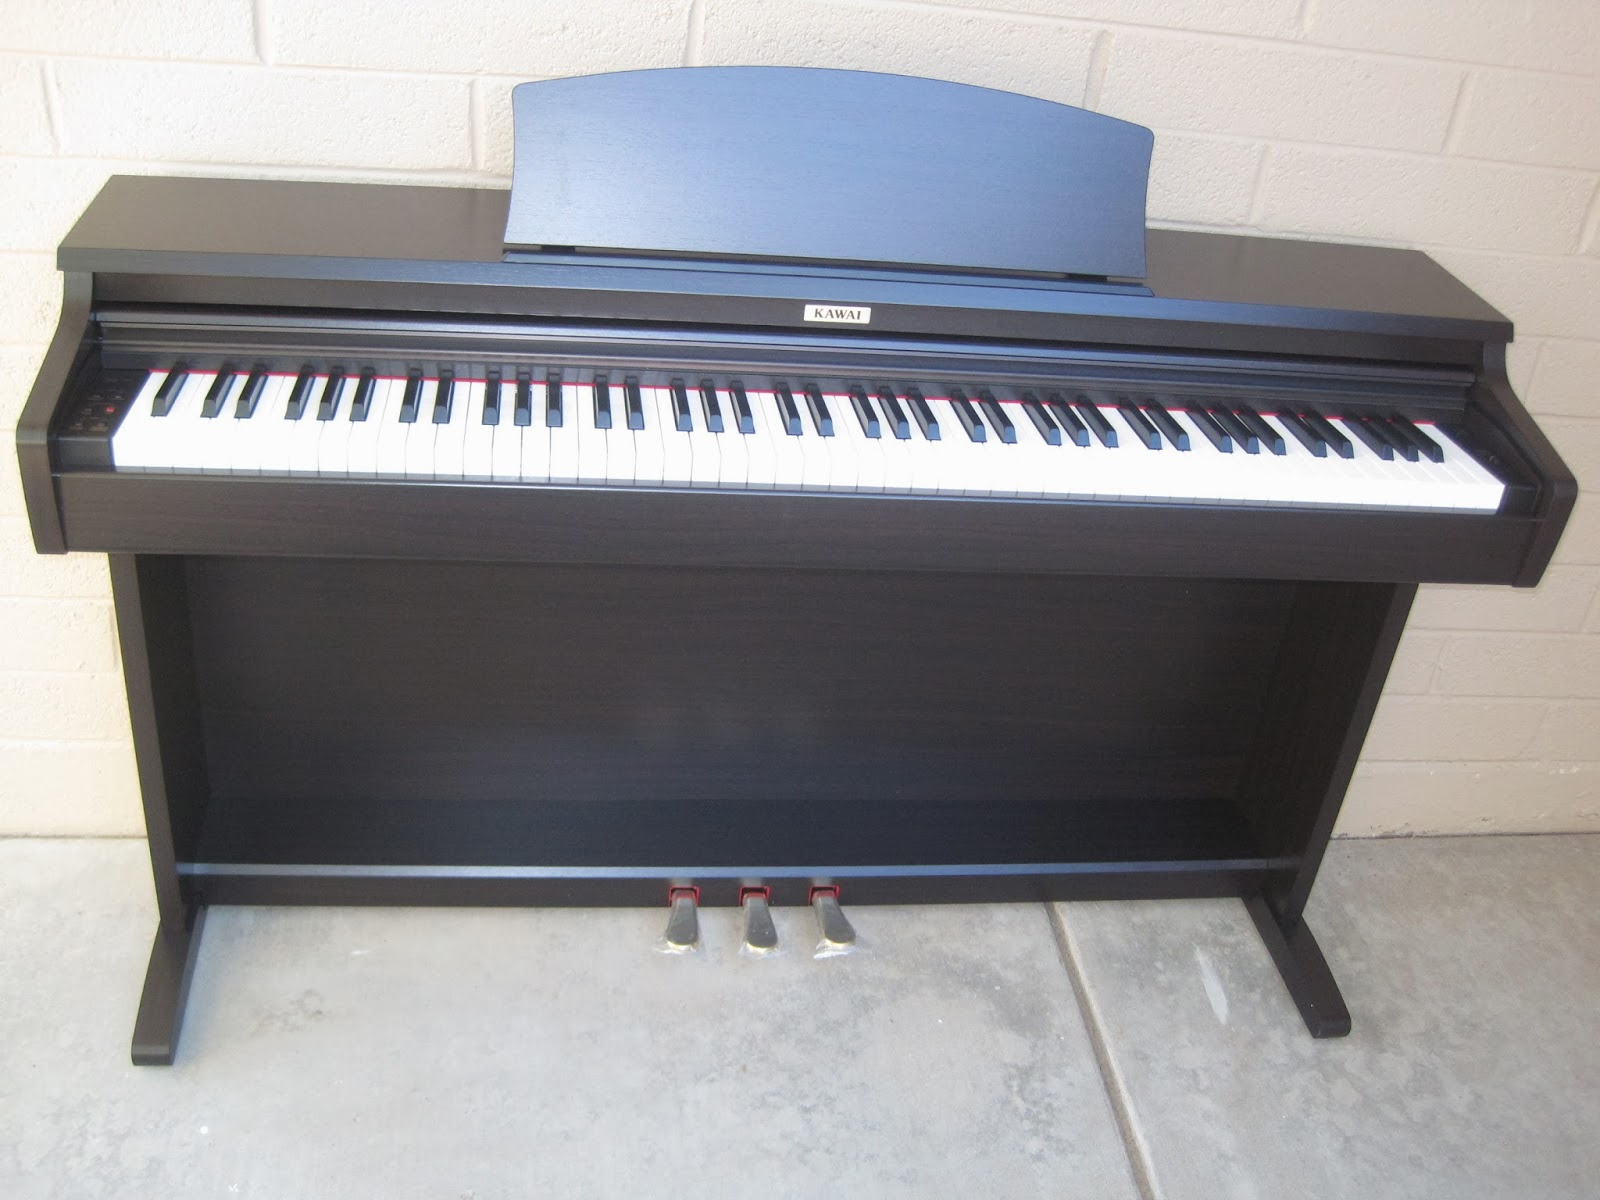 az piano reviews review kawai kdp90 digital piano recommended. Black Bedroom Furniture Sets. Home Design Ideas